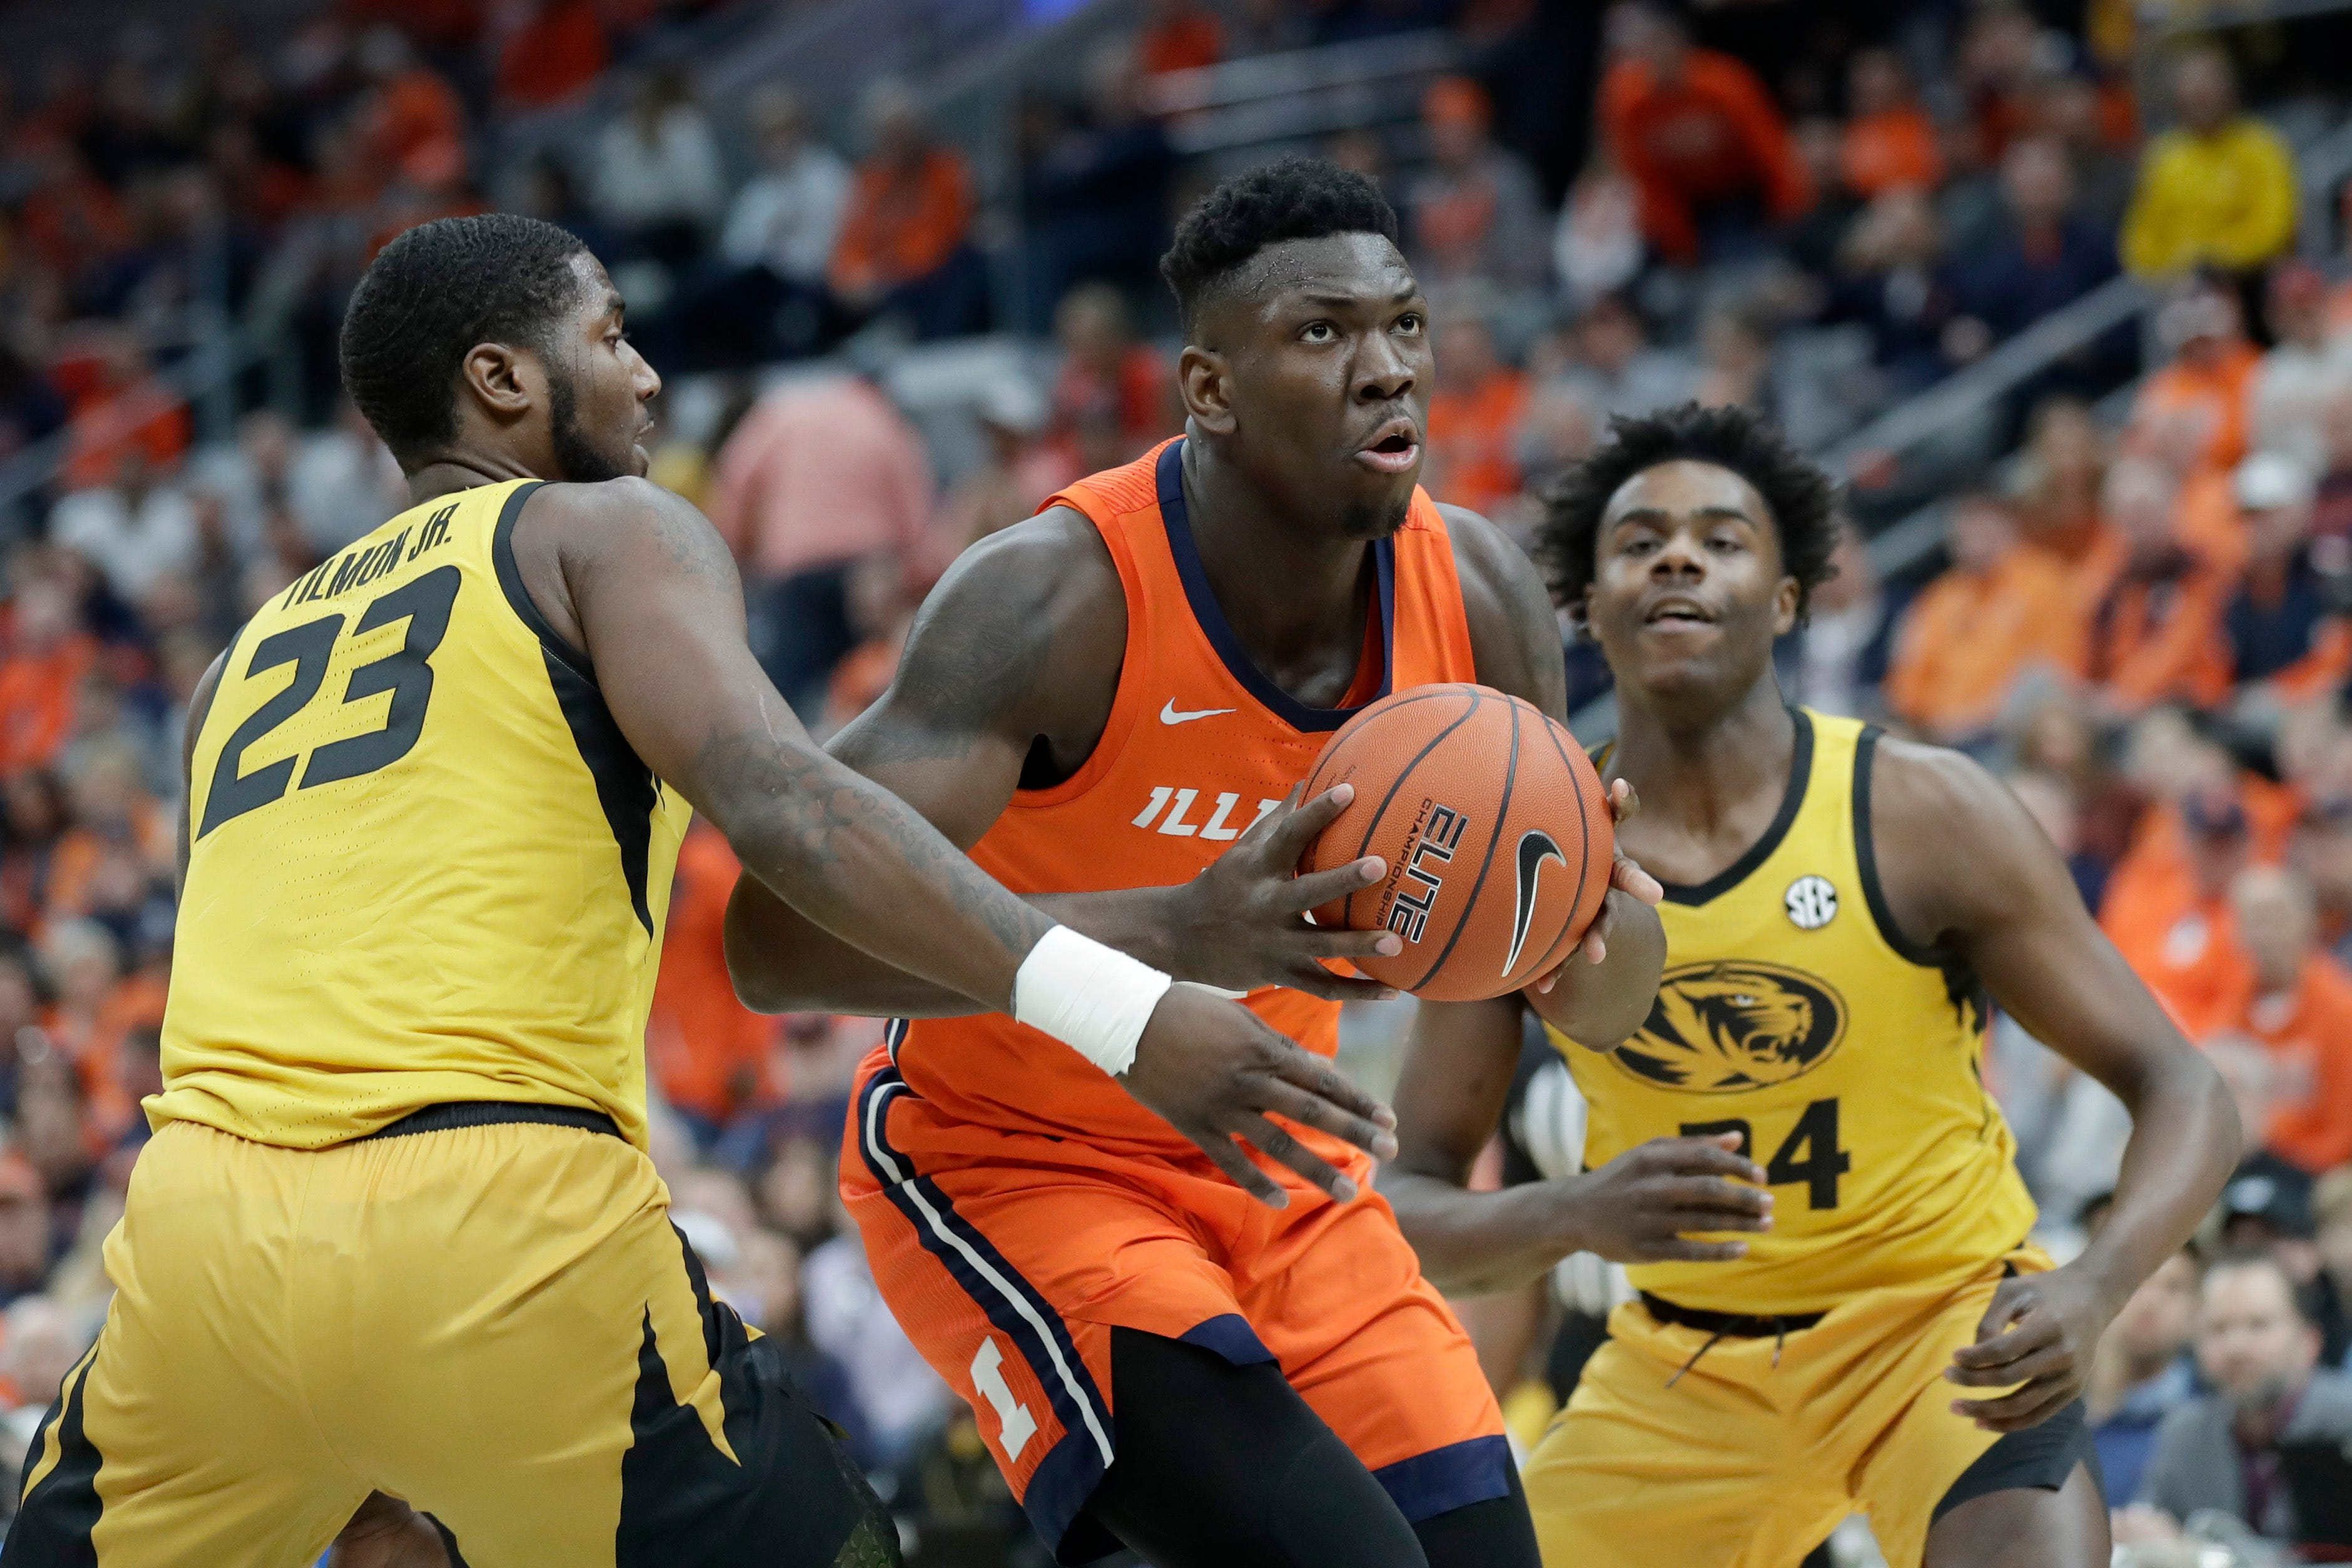 Illinois' hopes bolstered by return of All-American pair who bypassed NBA draft